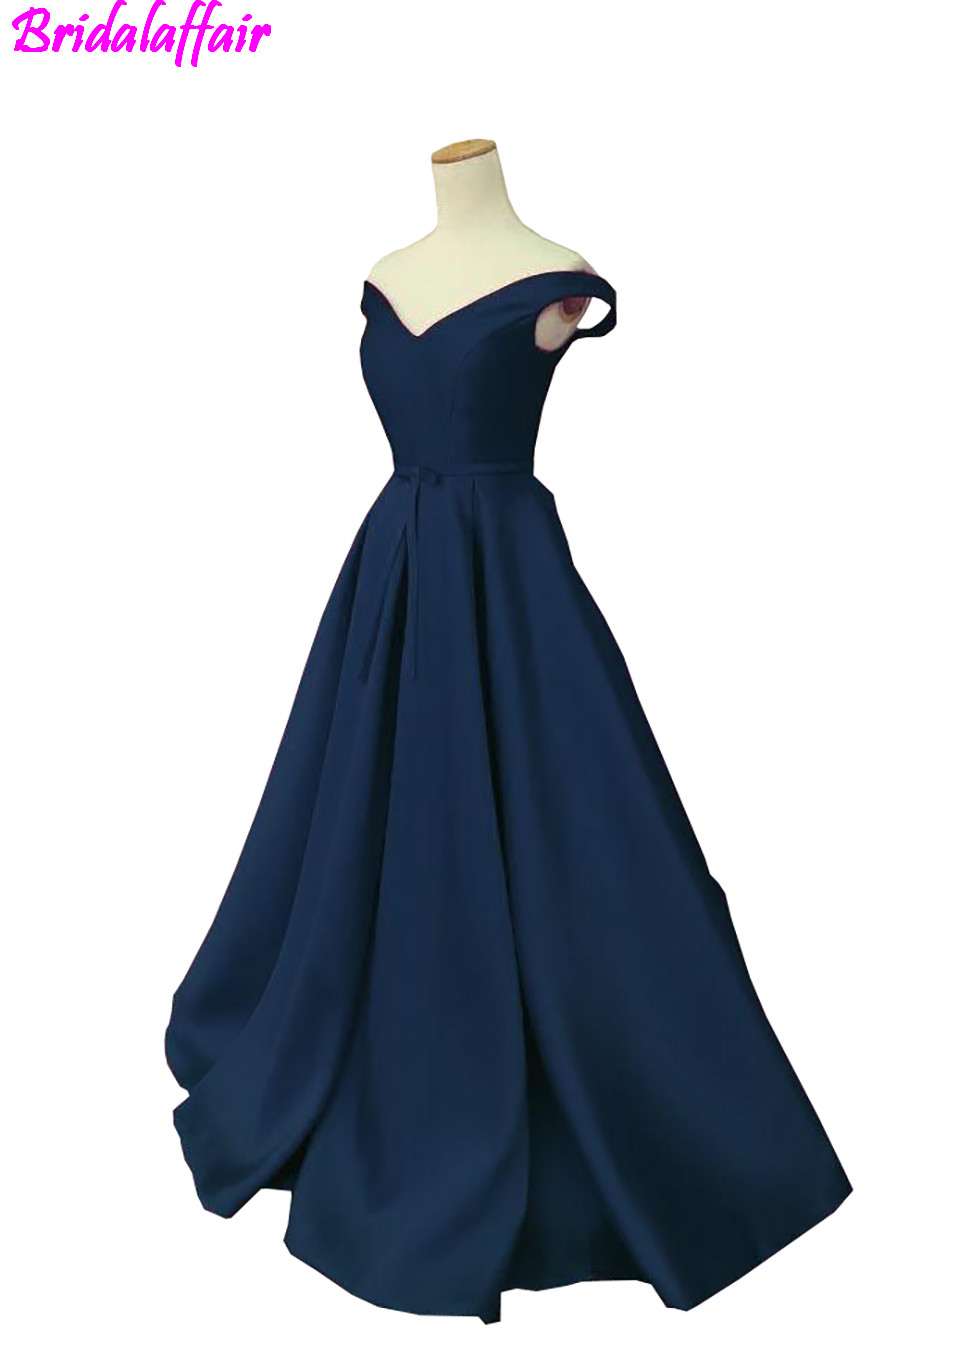 2018 Navy Blue Off Shoulder Prom Dresses V Neck Ruched Satin Floor Length Corset Lace Up Backless Long Homecoming Party Dresses in Homecoming Dresses from Weddings Events